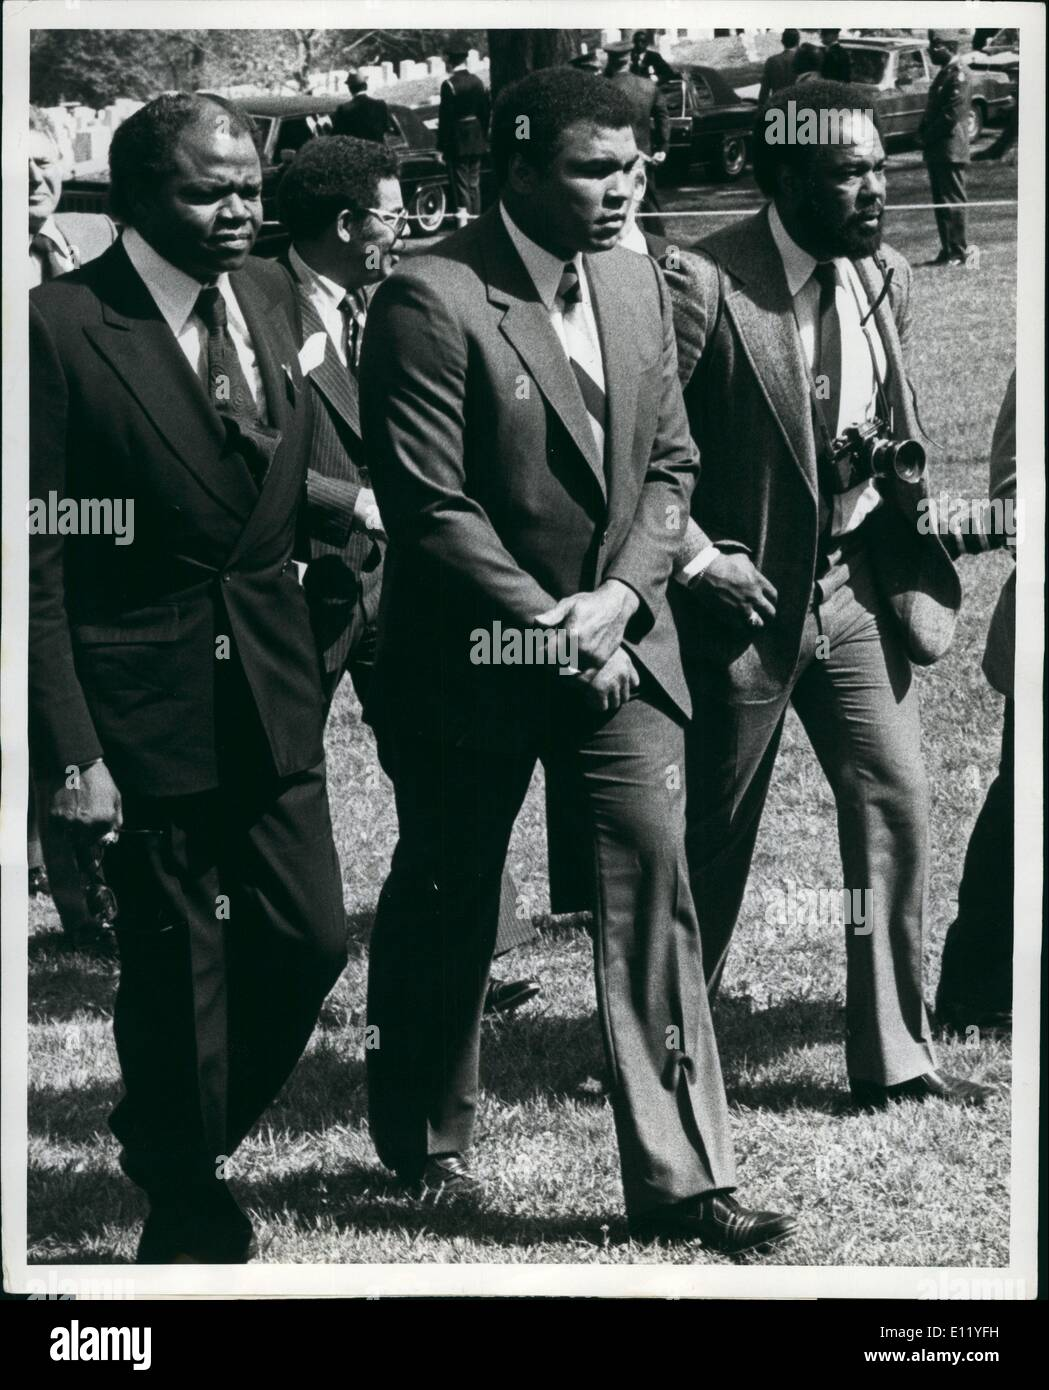 Apr. 04, 1981 - Consolidated news pictures.. Ali attends Lewis Funeral Arlington, Cemetery VA. 4/21/81.. Former heavyweight boxing chapion Muhammad Ali (Center) is shown at Arlington cemetery today as he attended the Joe Lewis Funeral Ceremony. Ali, Joe Walcott, Billy Vonn and Jow Frazier were some of the celebrities that attended the funeral. - Stock Image